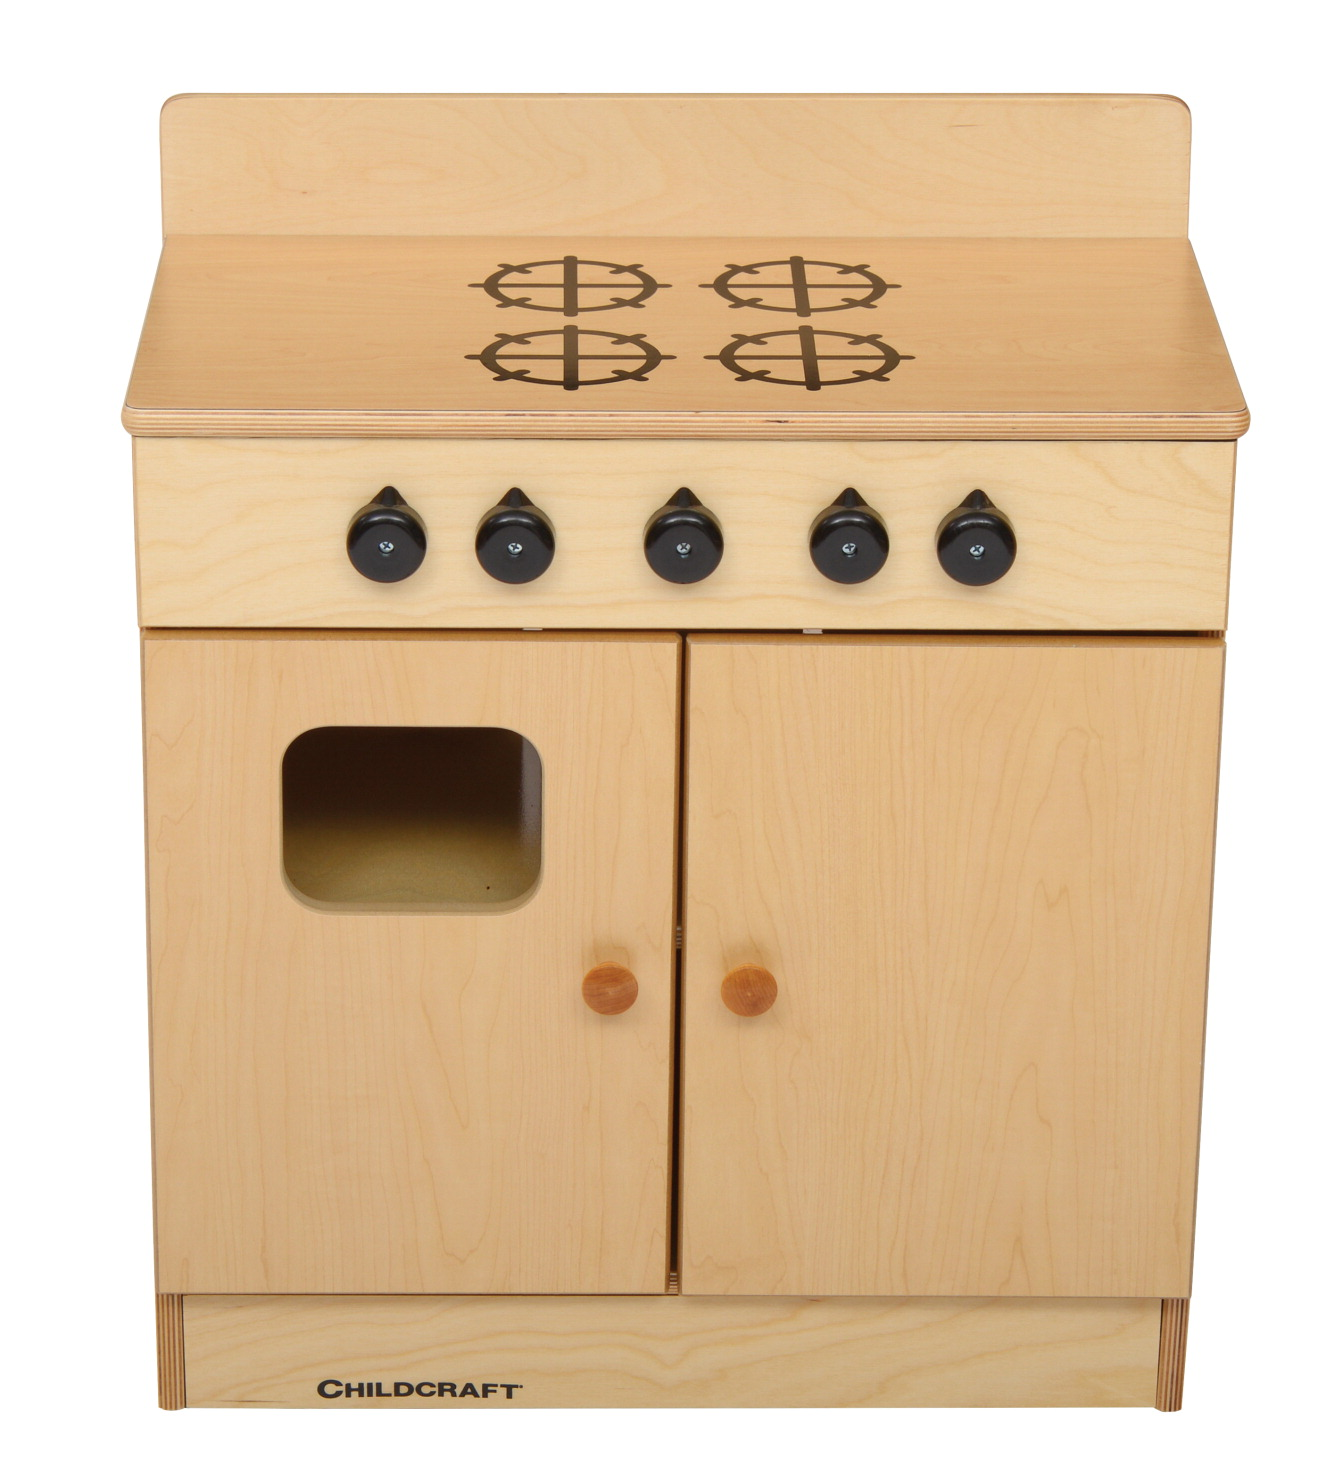 Childcraft play stove classroom direct for Child craft play kitchen